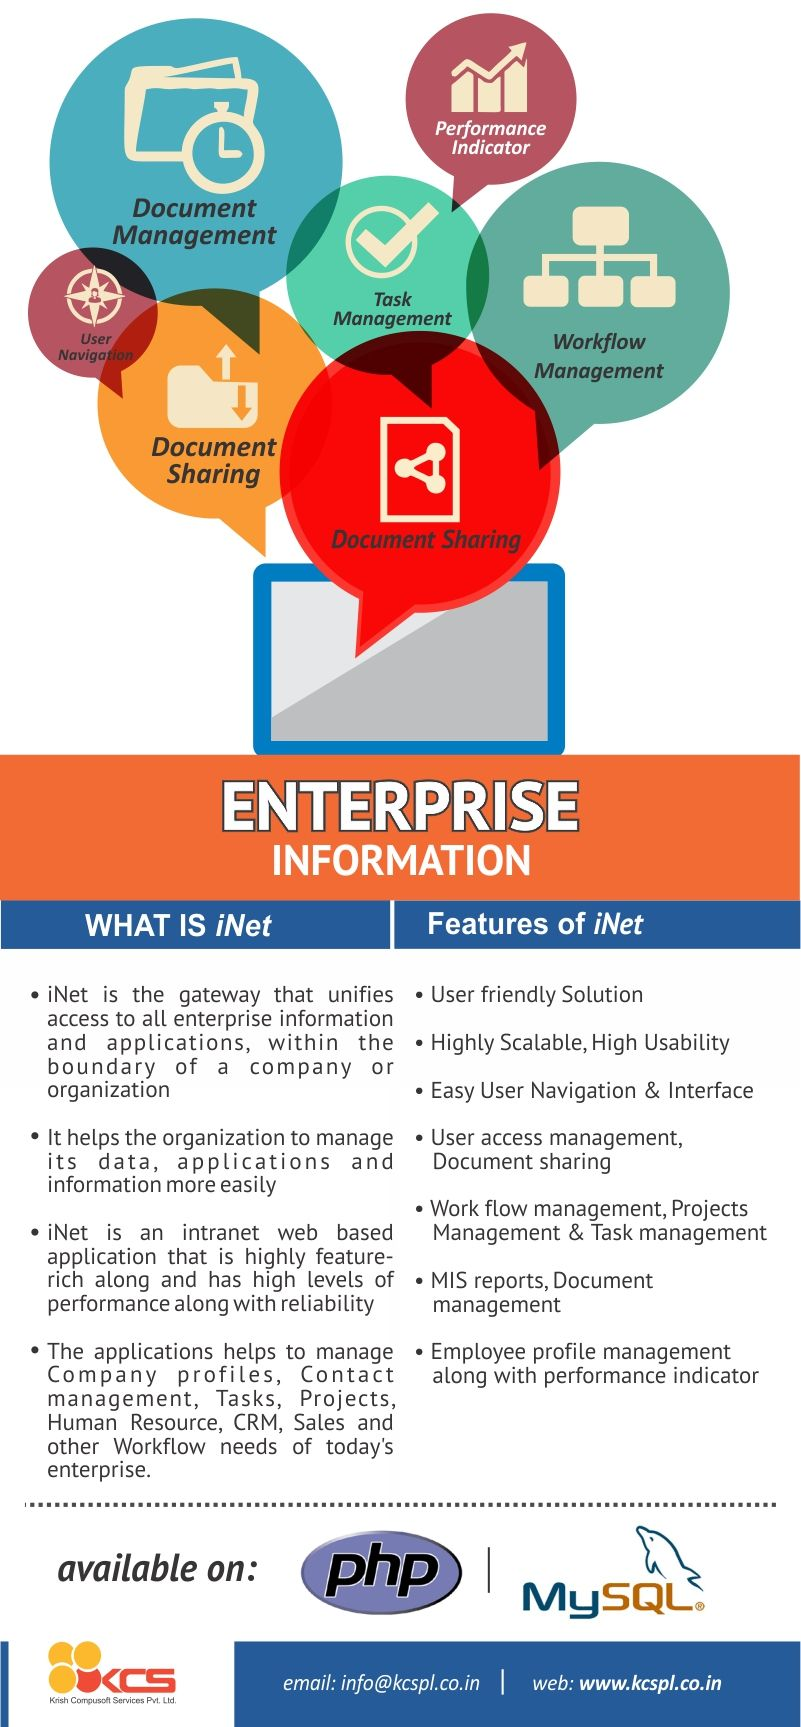 Unify Access To All Enterprise Information And Management